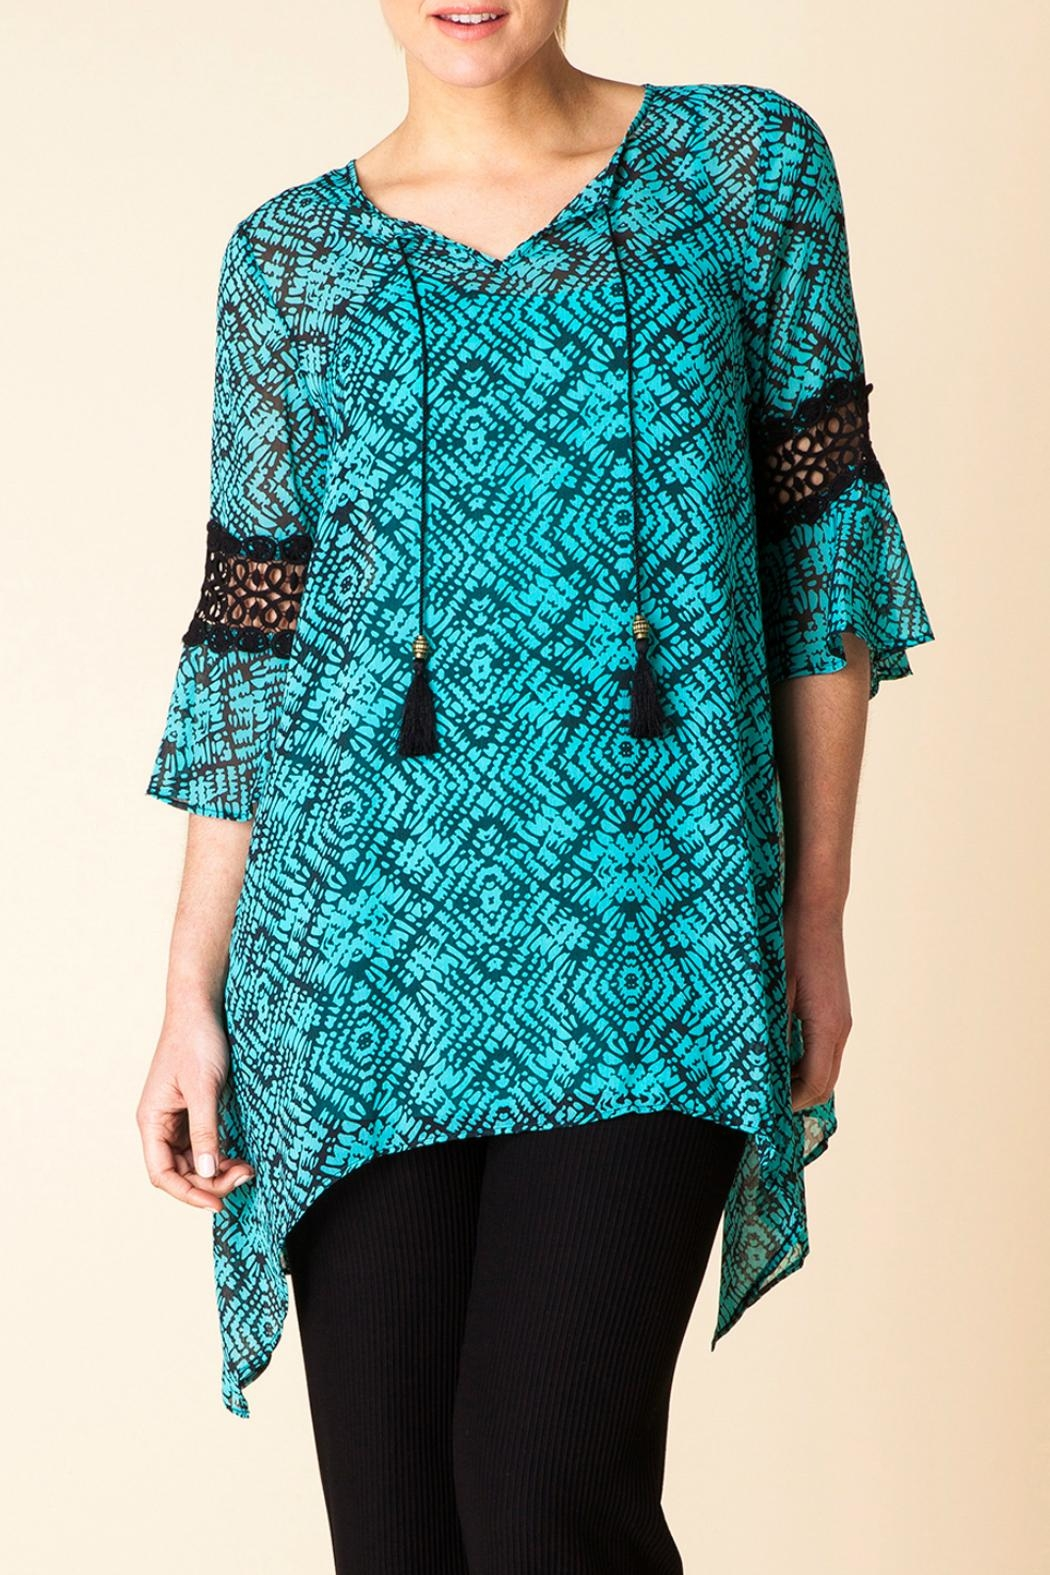 Yest Aqua Print Tunic - Front Cropped Image